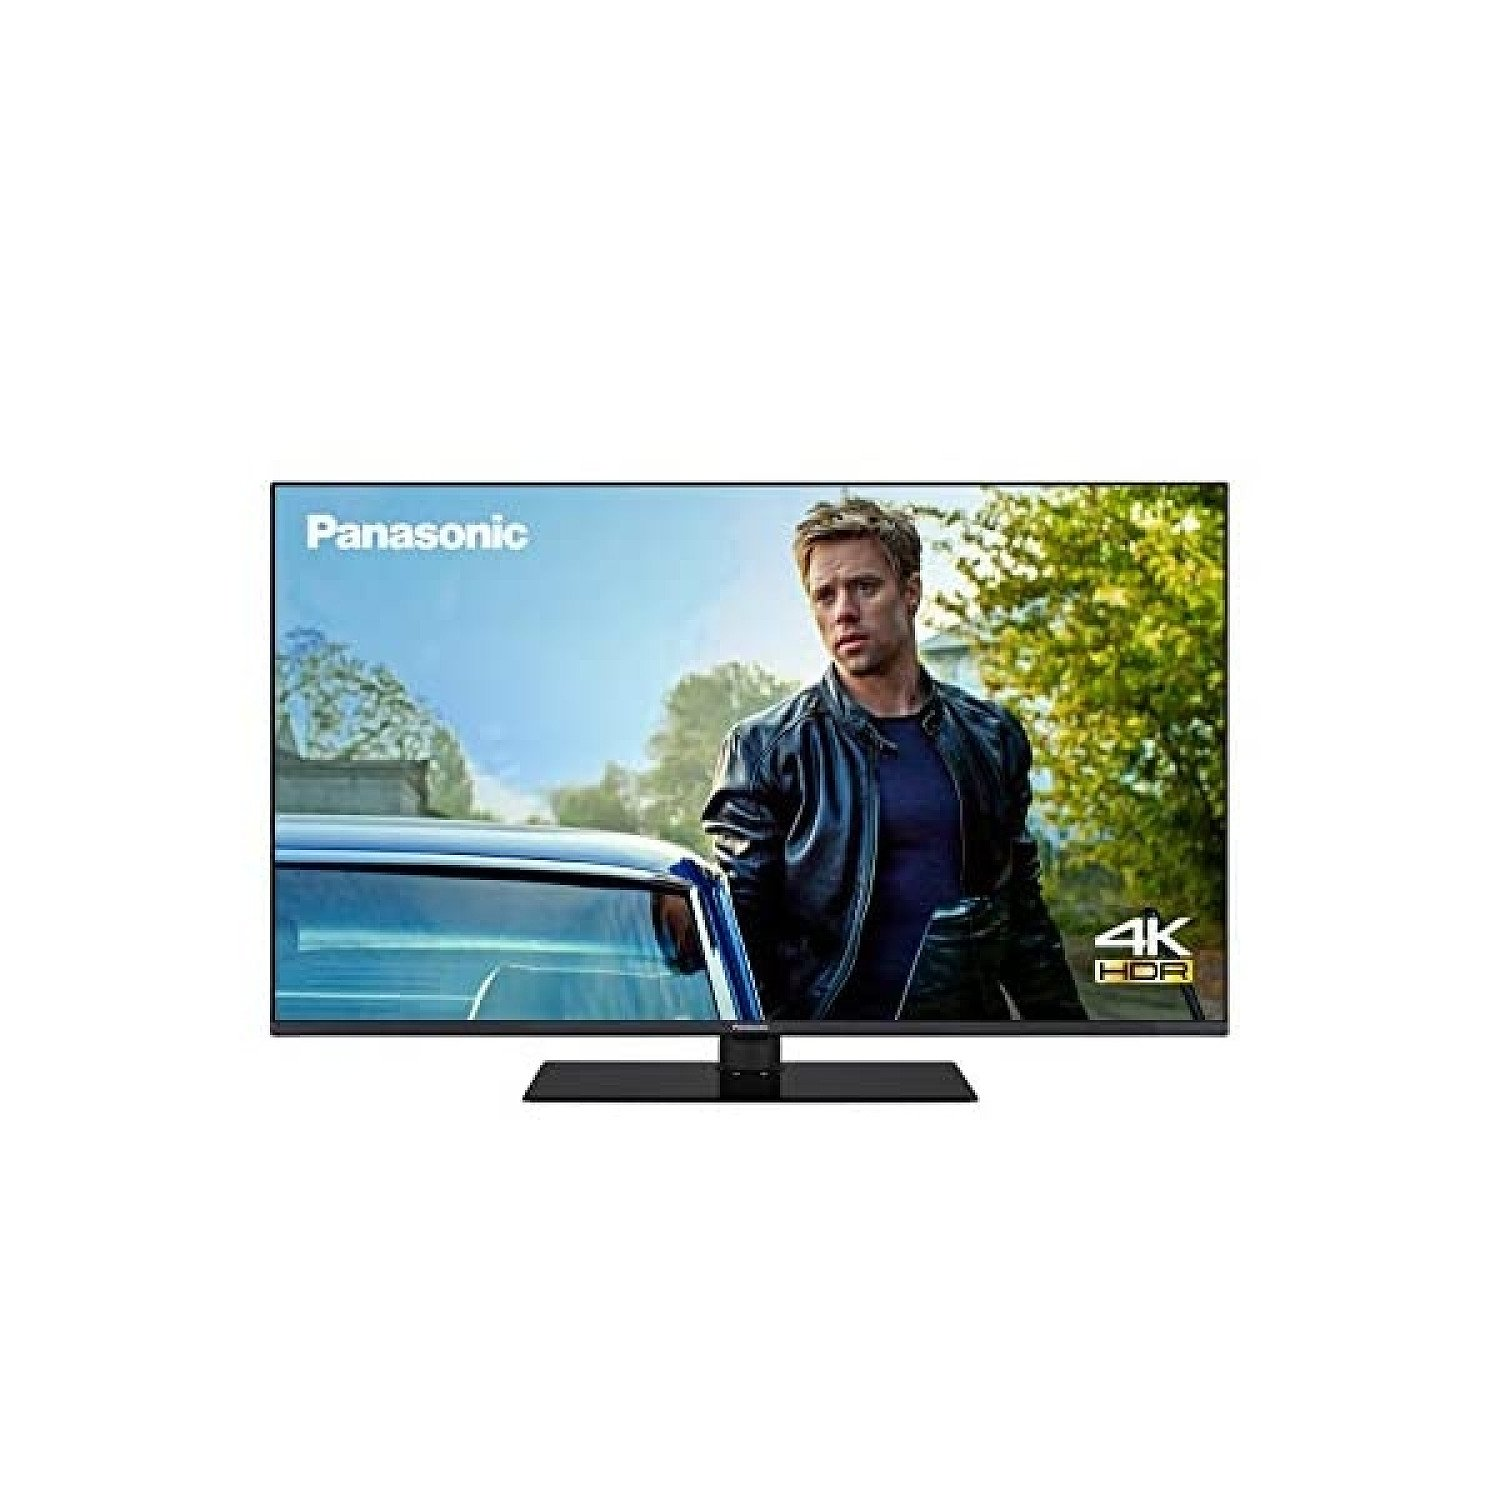 Panasonic TX-43HX700B 43 inch 4K HDR Android TV with Dolby Vision, Google Play and built-in Google A